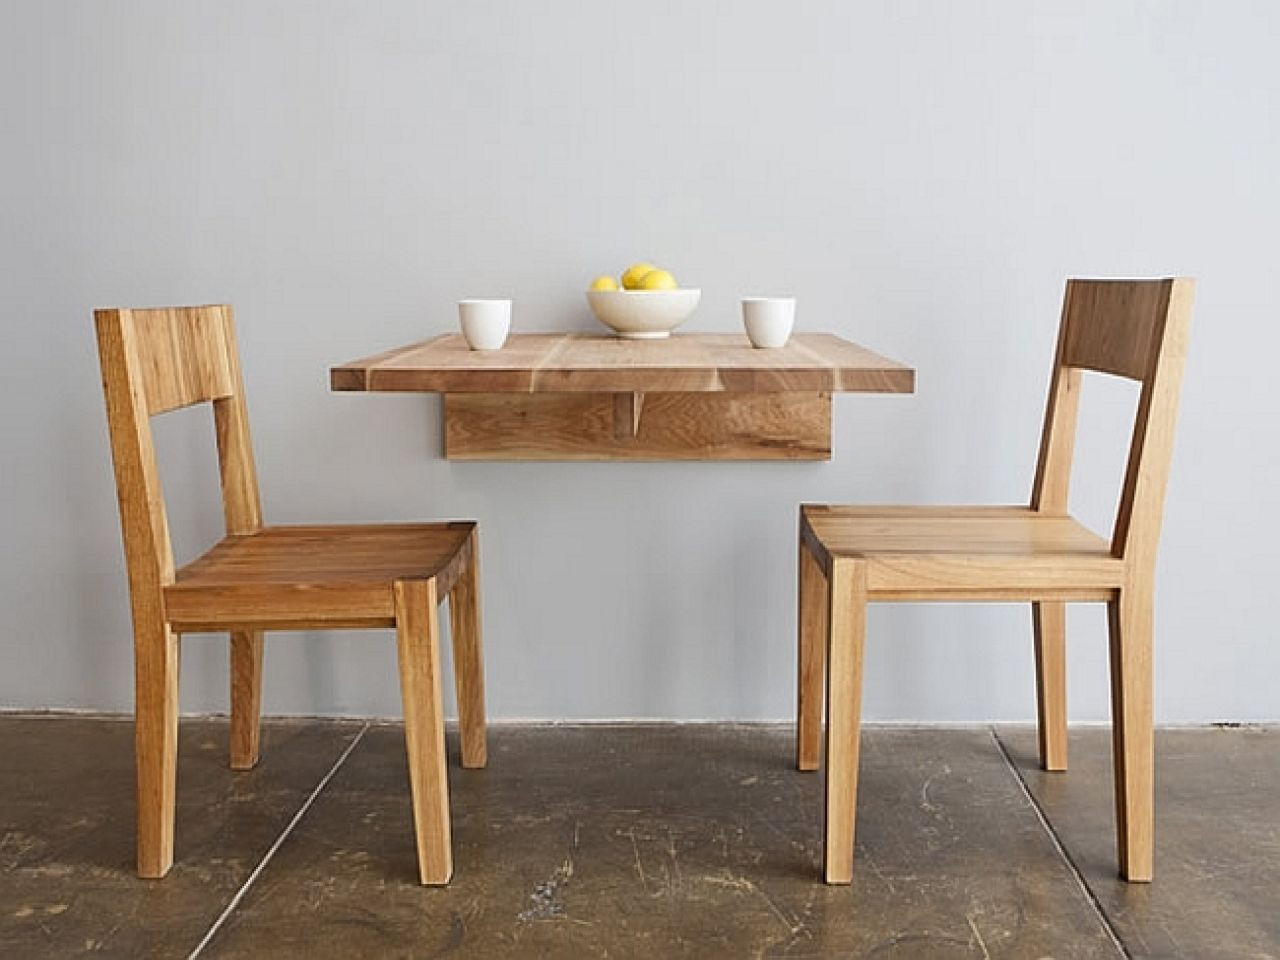 Best ideas about Small Space Dining Table . Save or Pin Wall Fold Away Dining Tables for Small Spaces Now.